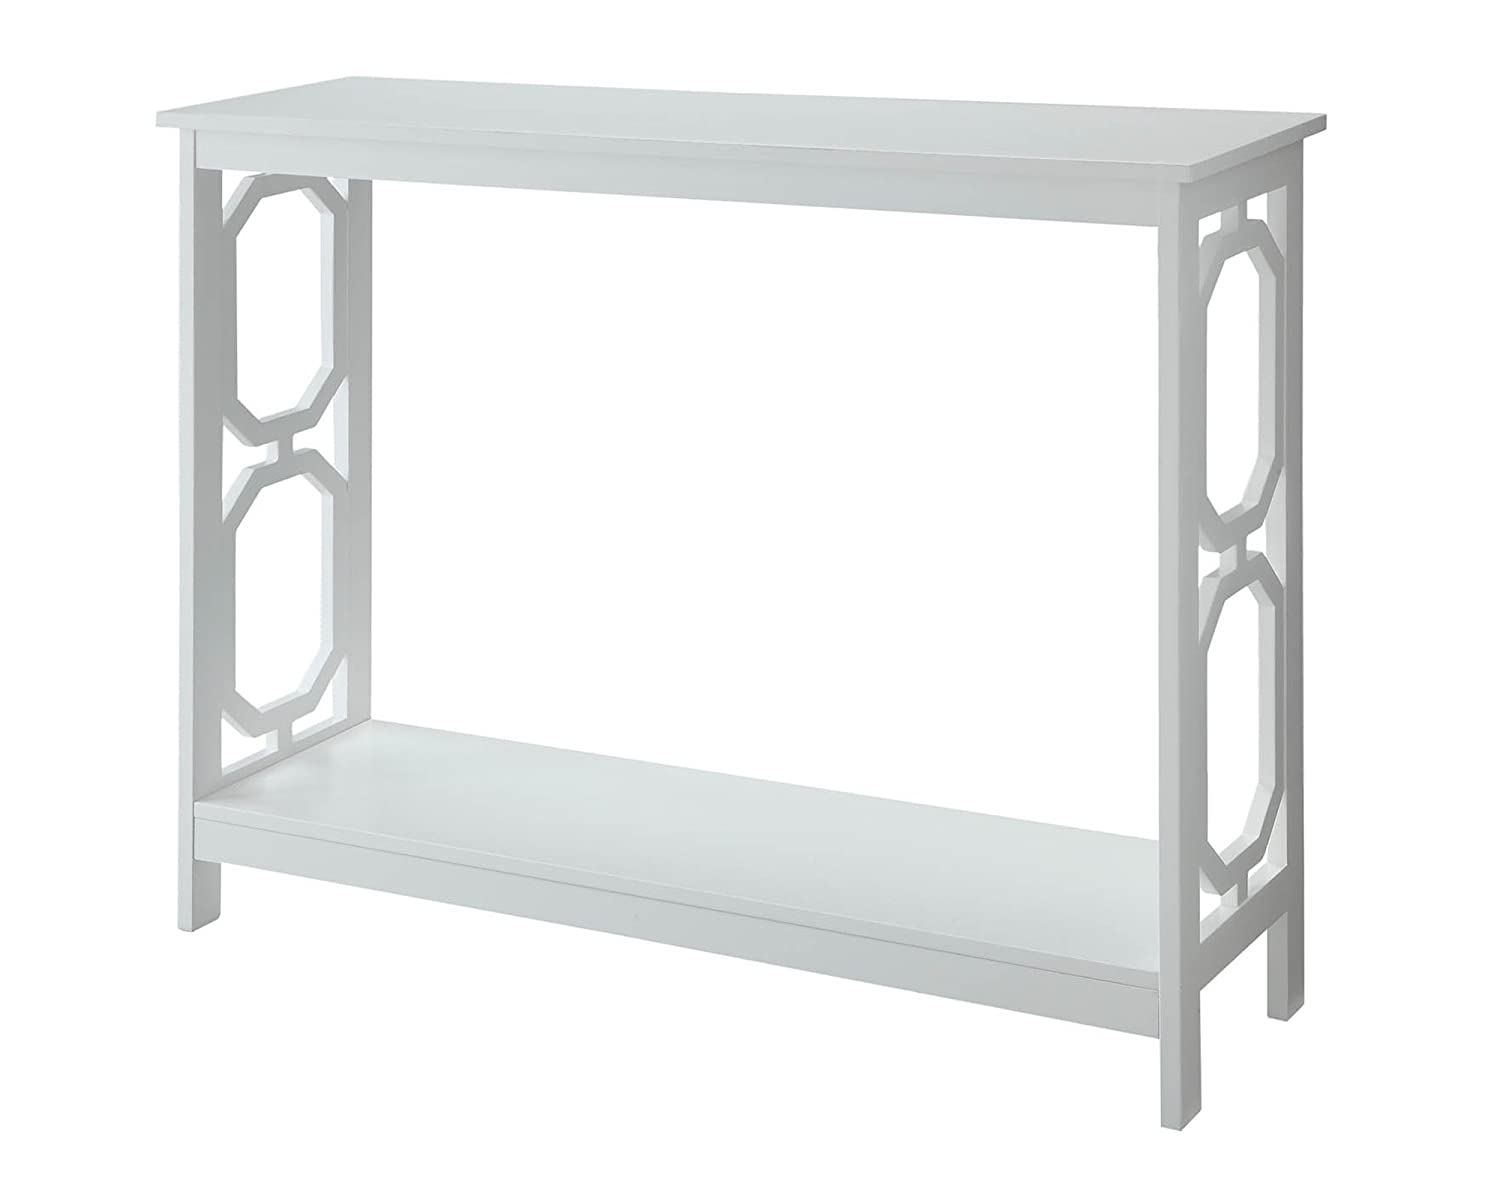 amazoncom convenience concepts omega console table white  - amazoncom convenience concepts omega console table white kitchen dining